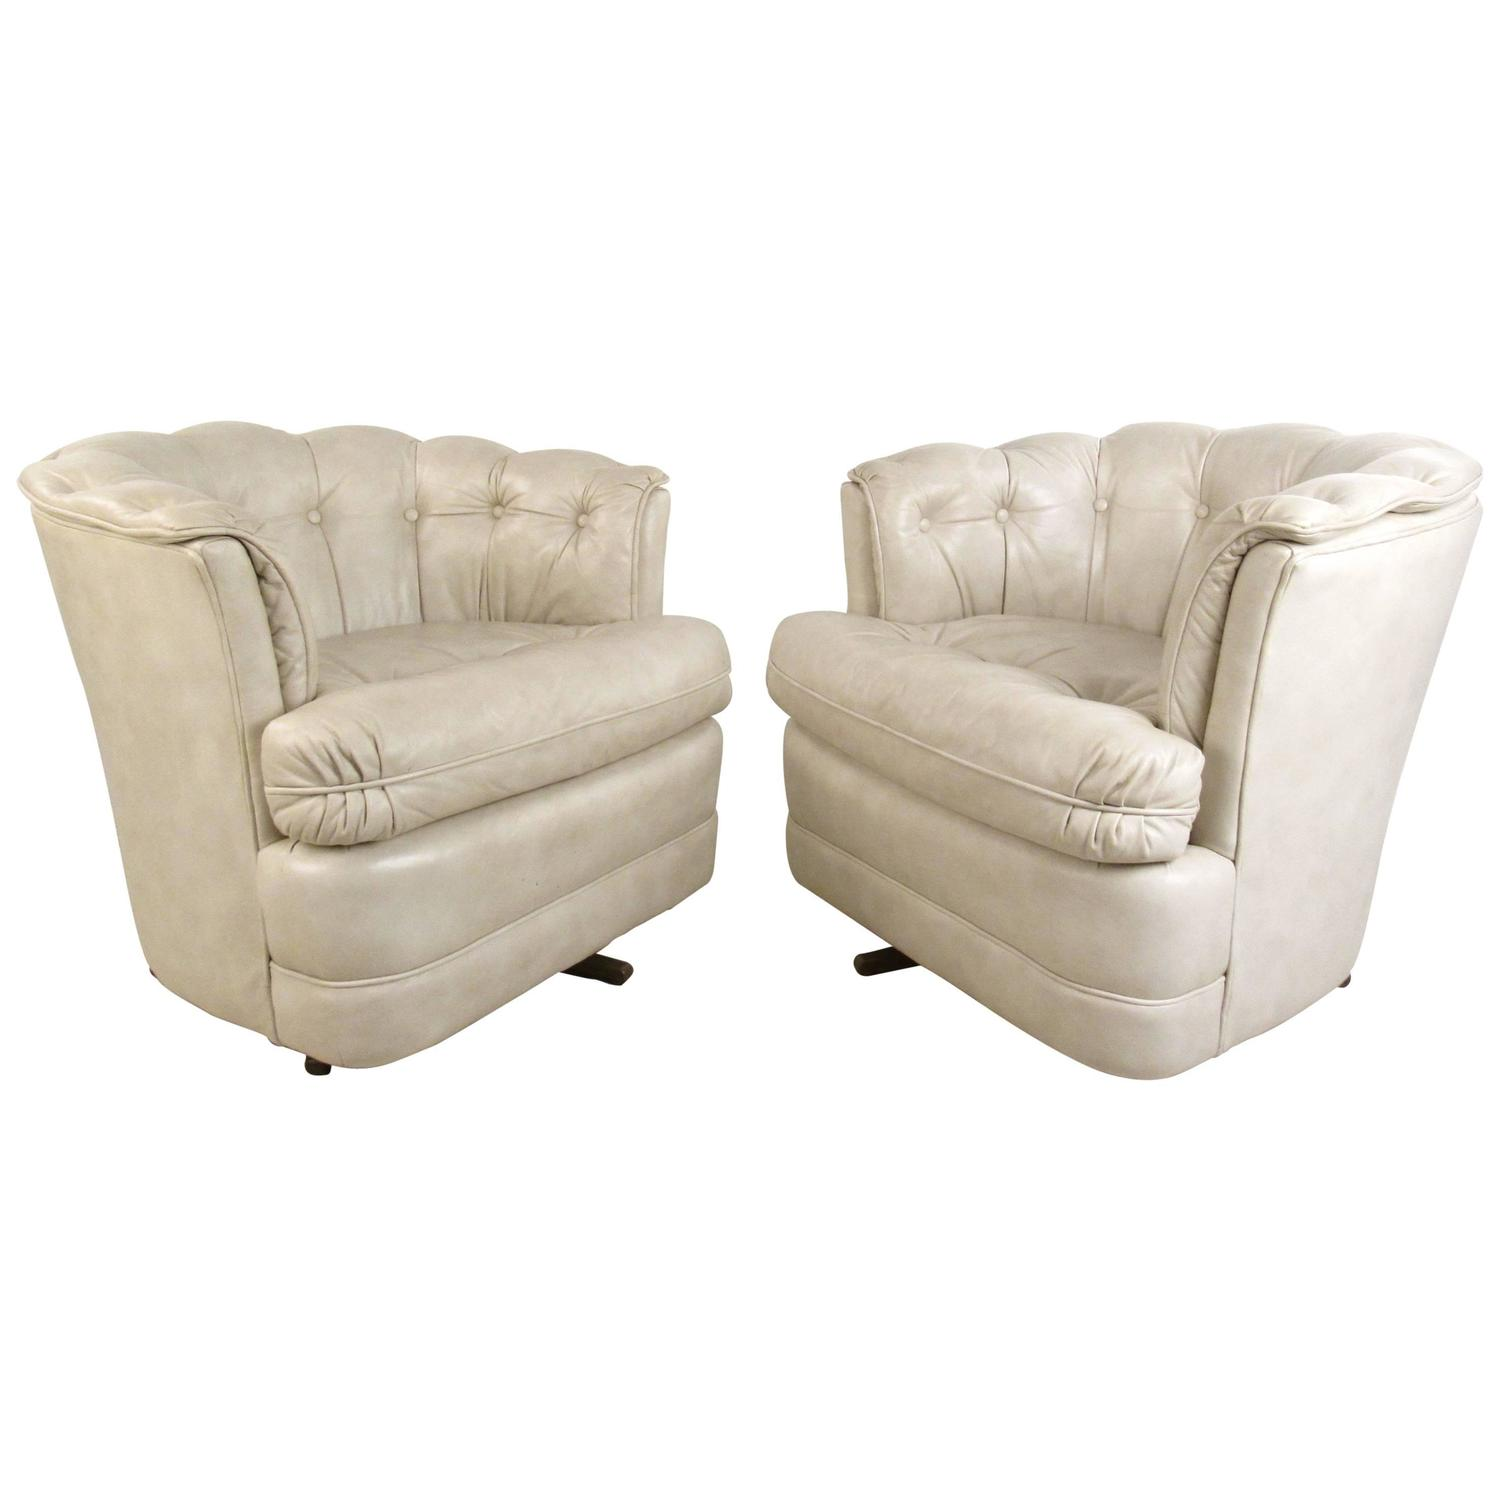 modern leather swivel lounge chair designer wingback chairs pair of vintage tufted mid